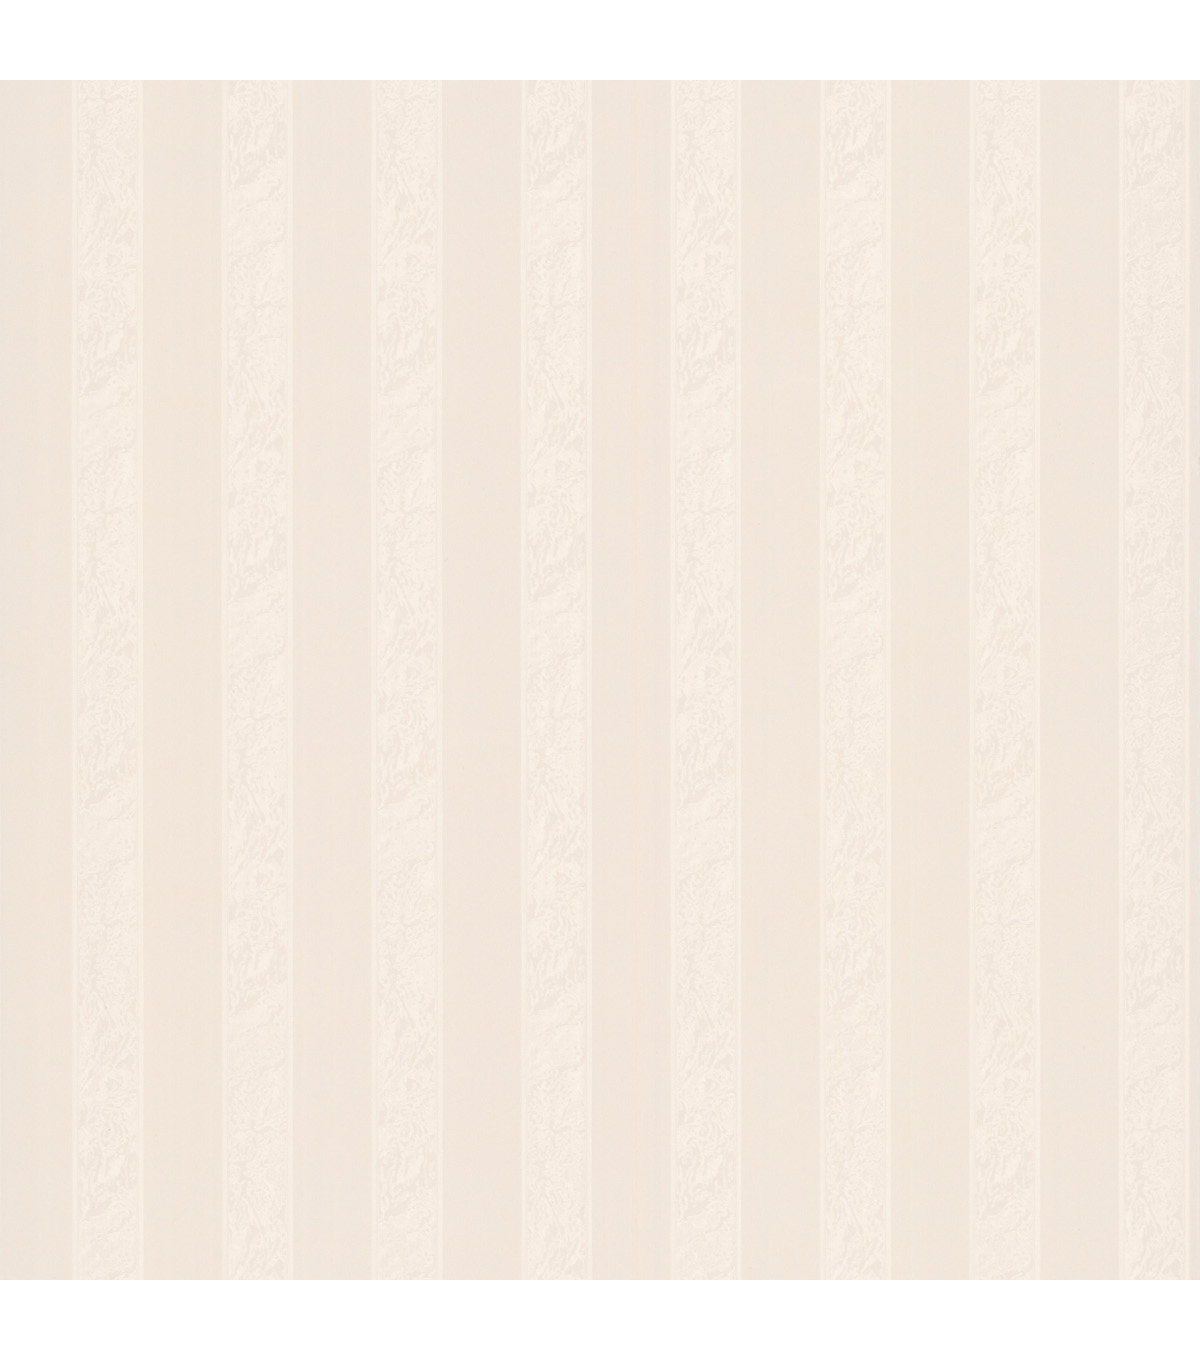 Kingsbury White Satin Stripe Wallpaper Sample